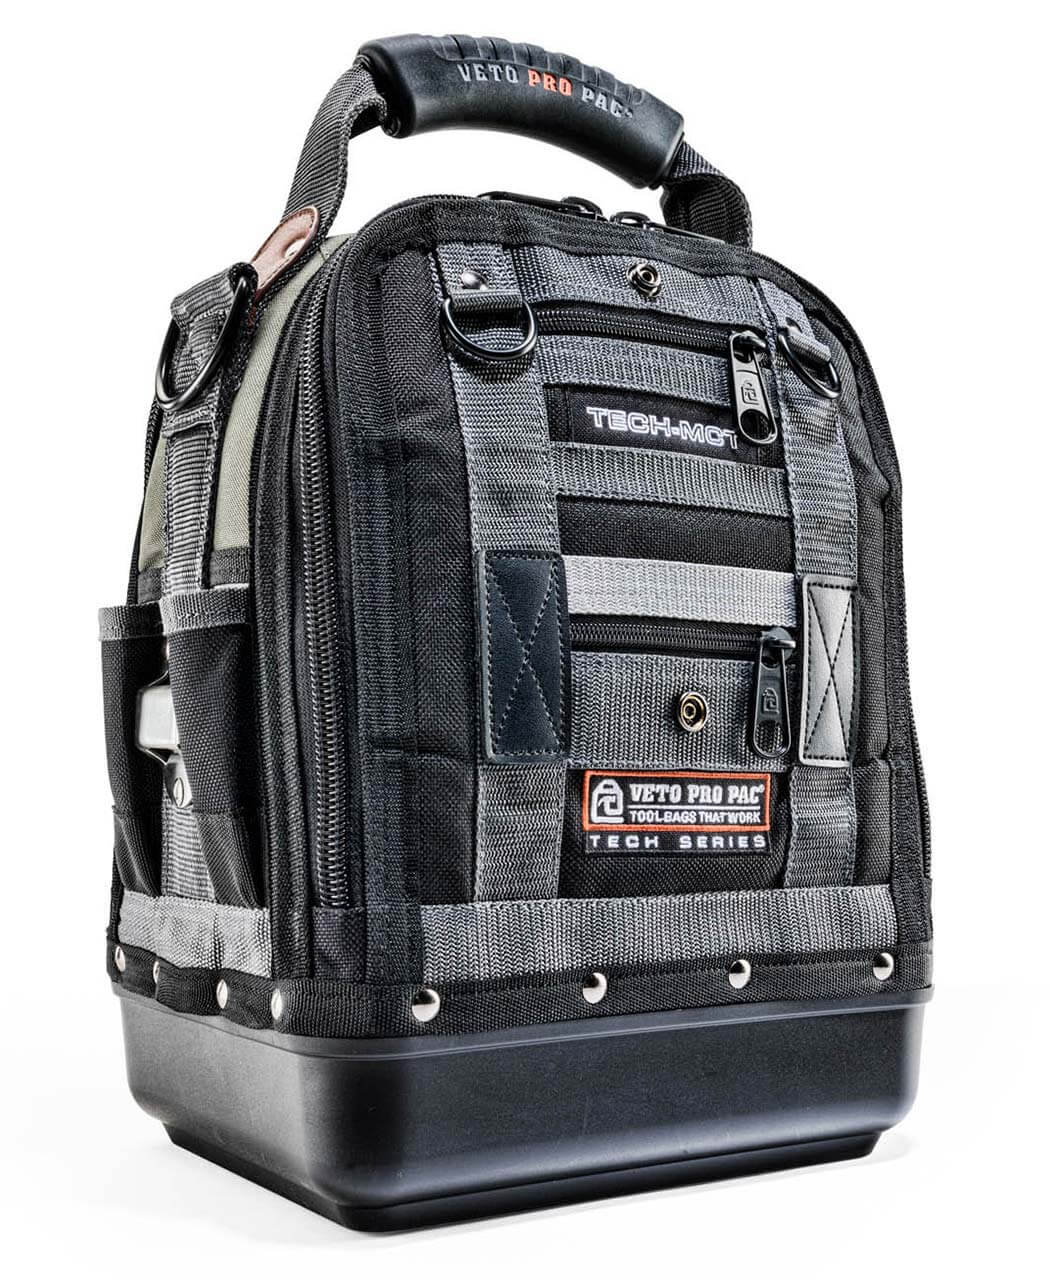 Veto Pro Pac Tech MCT Tool Bag with Two Storage Bays